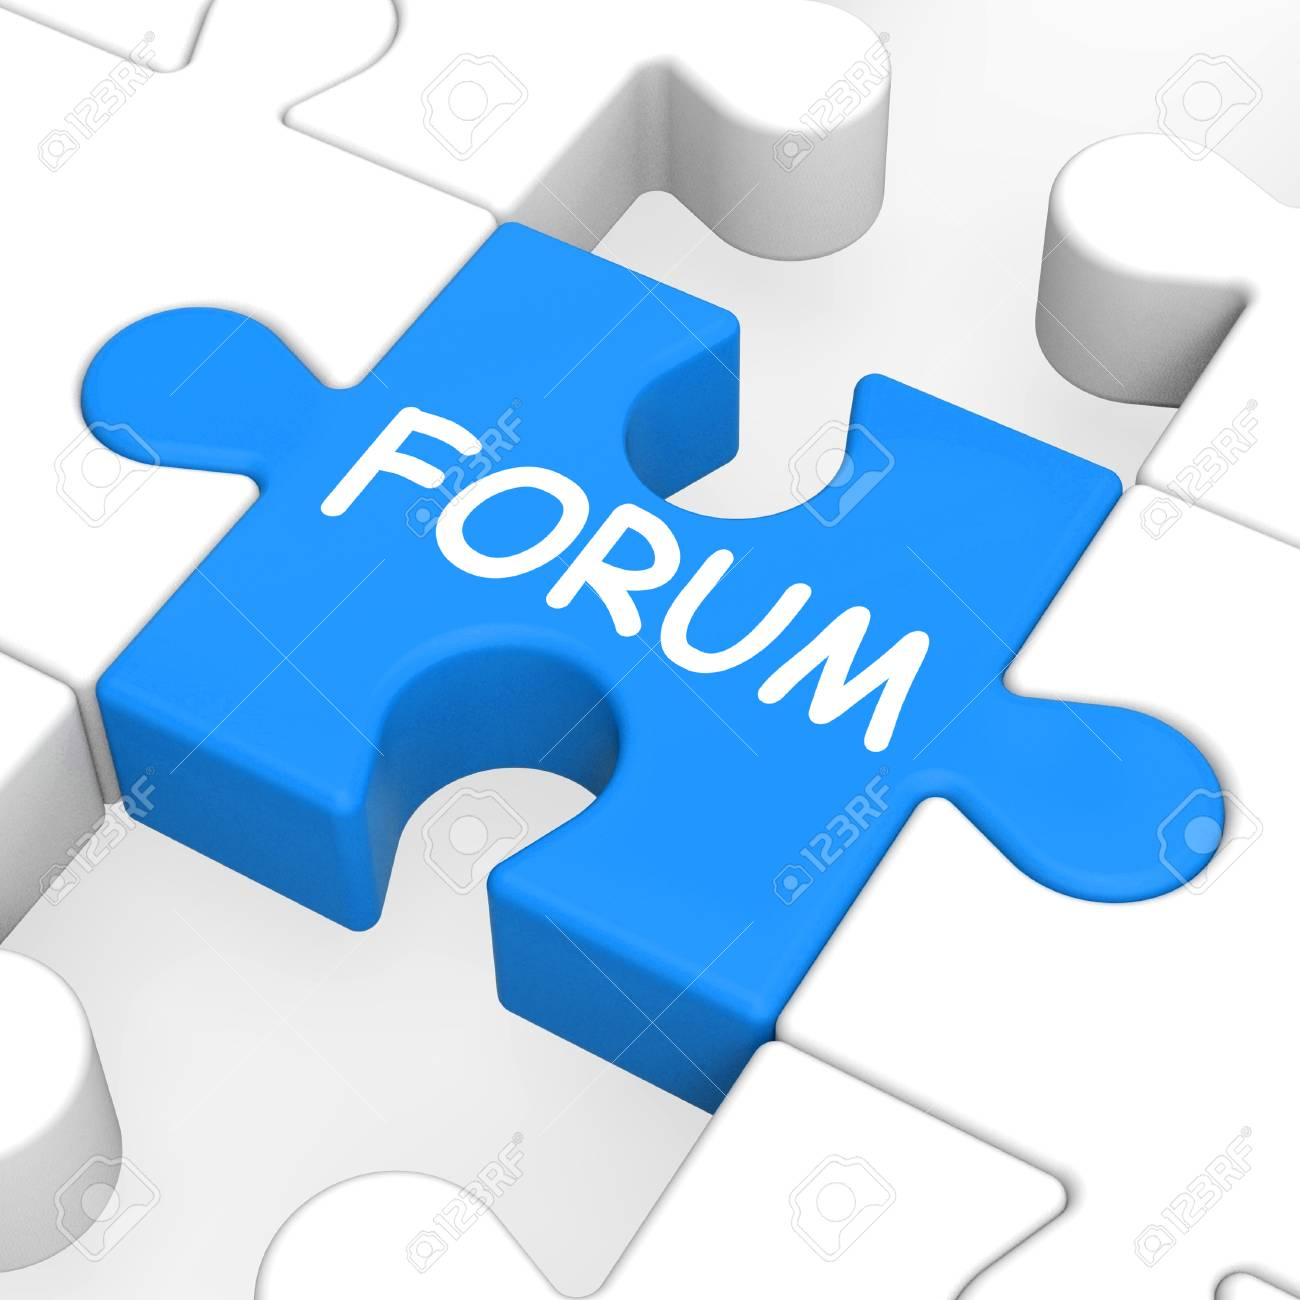 Forum Puzzle Showing Online Community Chat And Advice